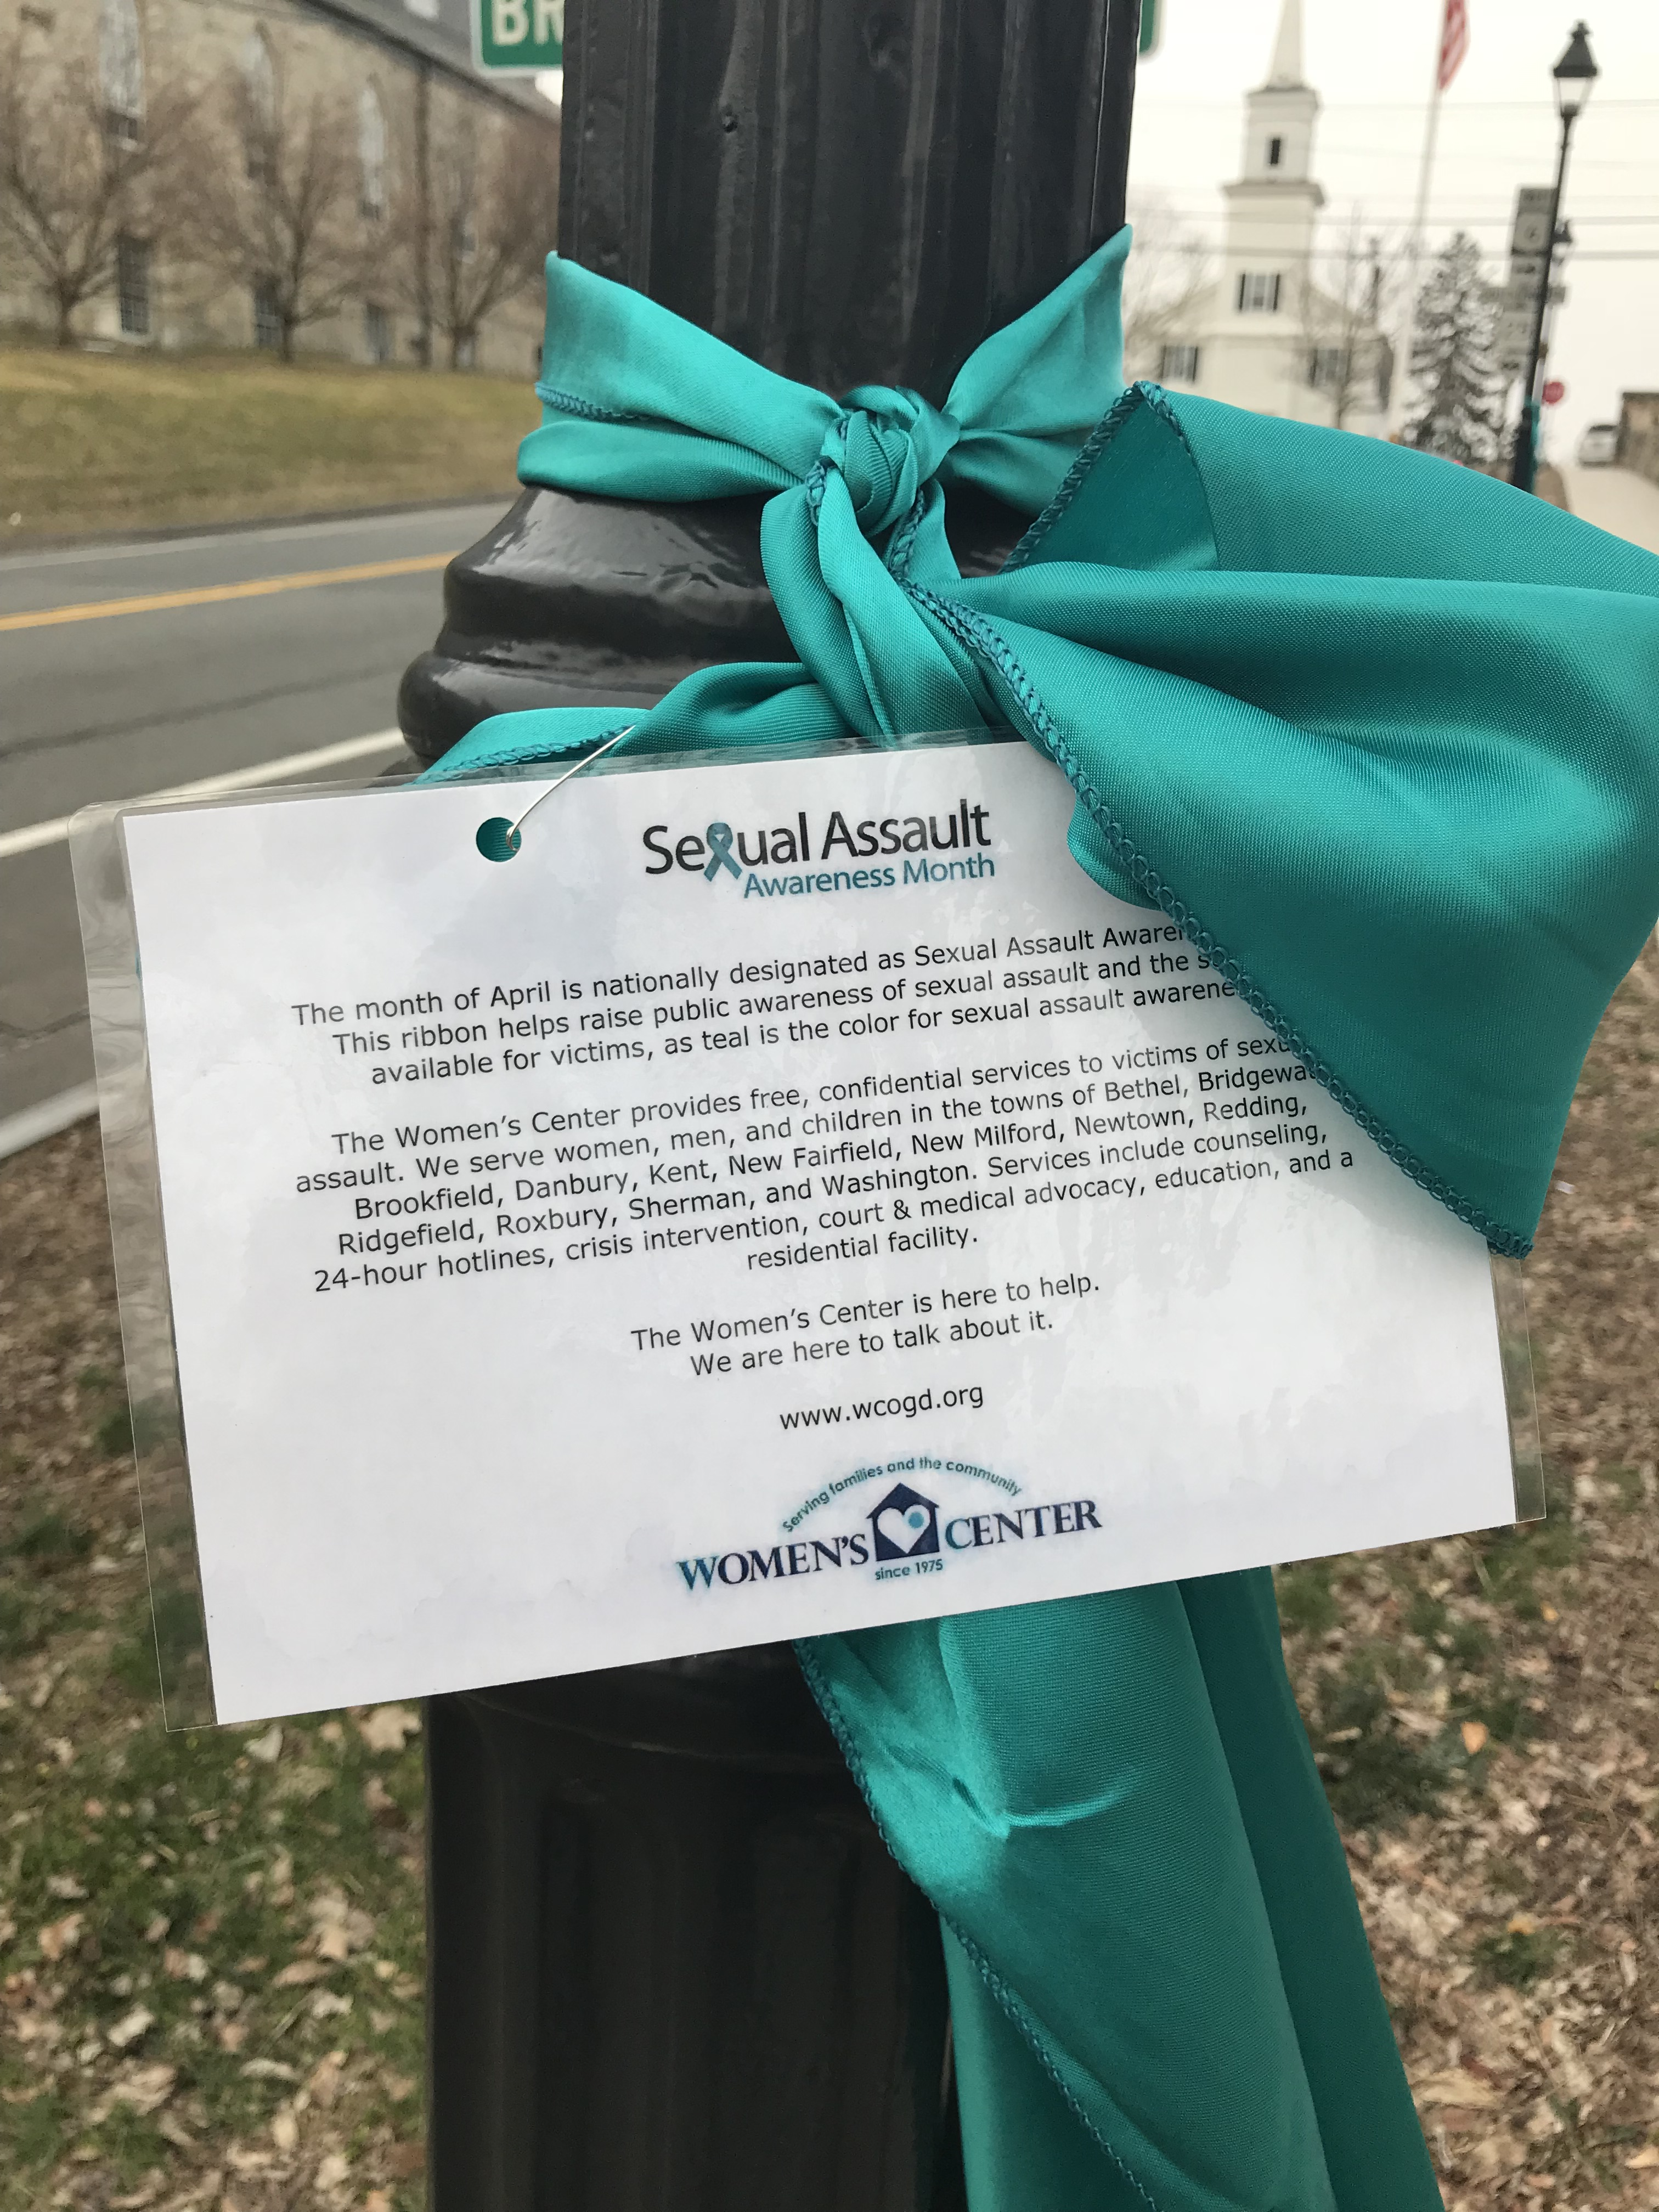 Teal Ribbons Signal Sexual Assault Awareness Month | The Newtown Bee